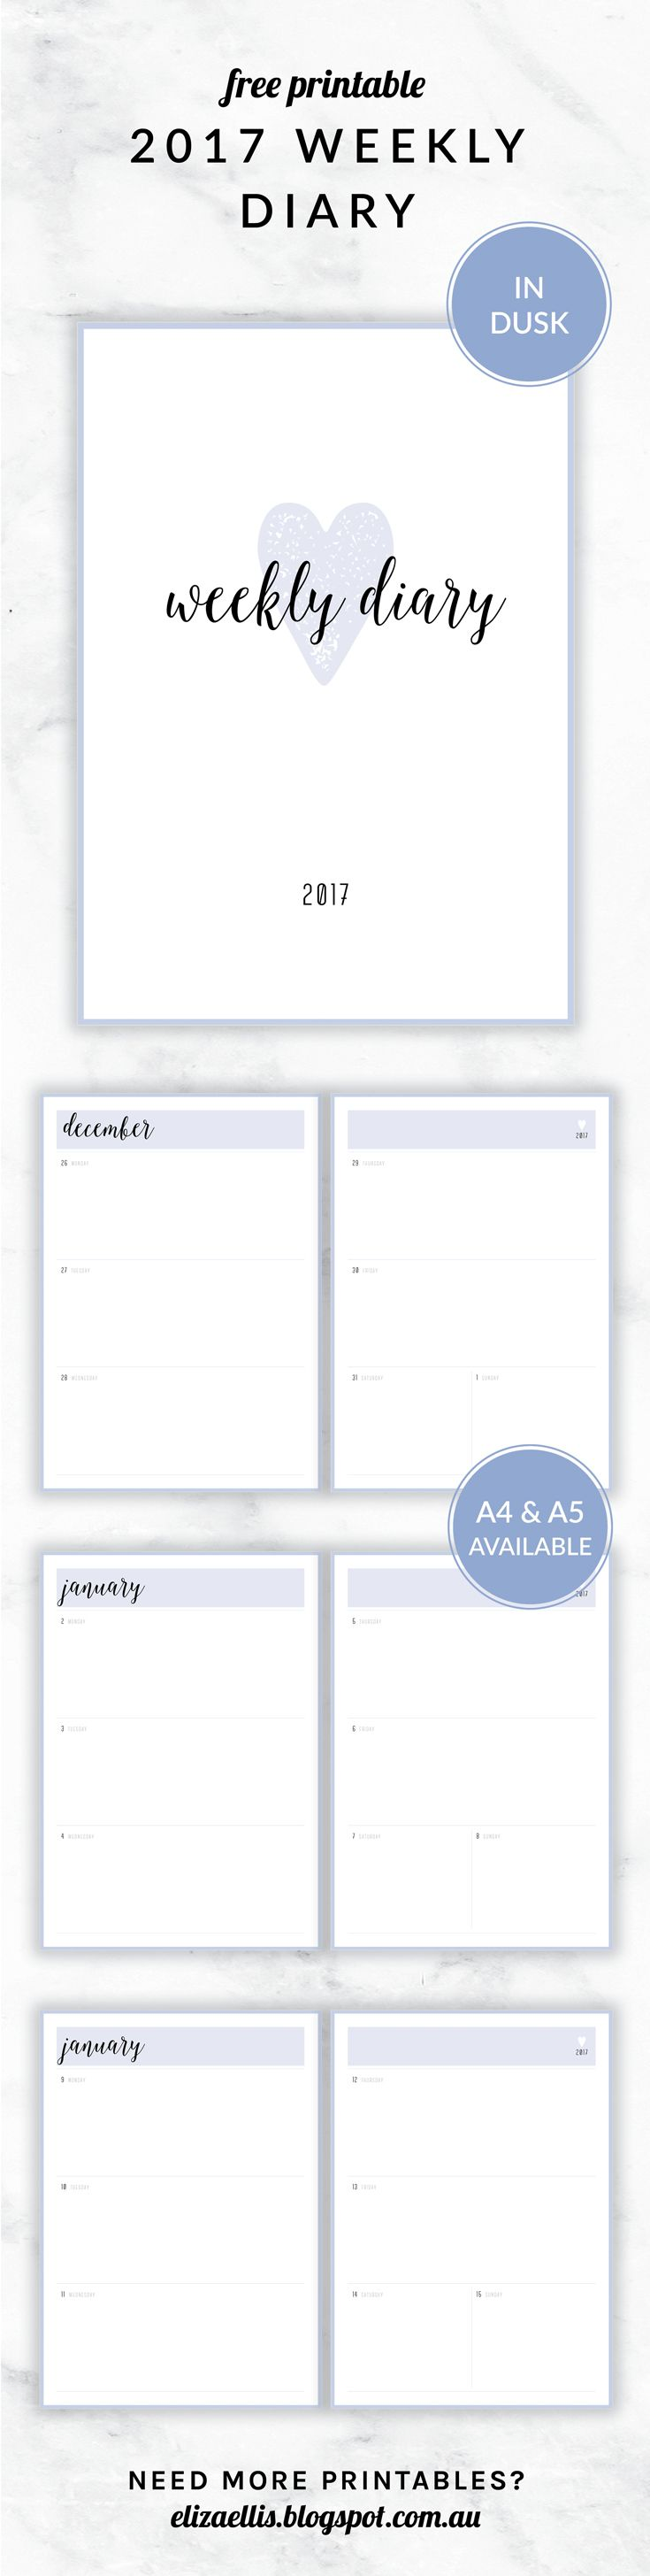 Free Printable 2017 Irma Collection Weekly Diary // by Eliza Ellis. Available in both A4 and A5 sizes, and in 6 different colors. Check out my website to find matching daily planners, weekly planners, calendars, to do lists, notes, accounts, contacts and much much more!